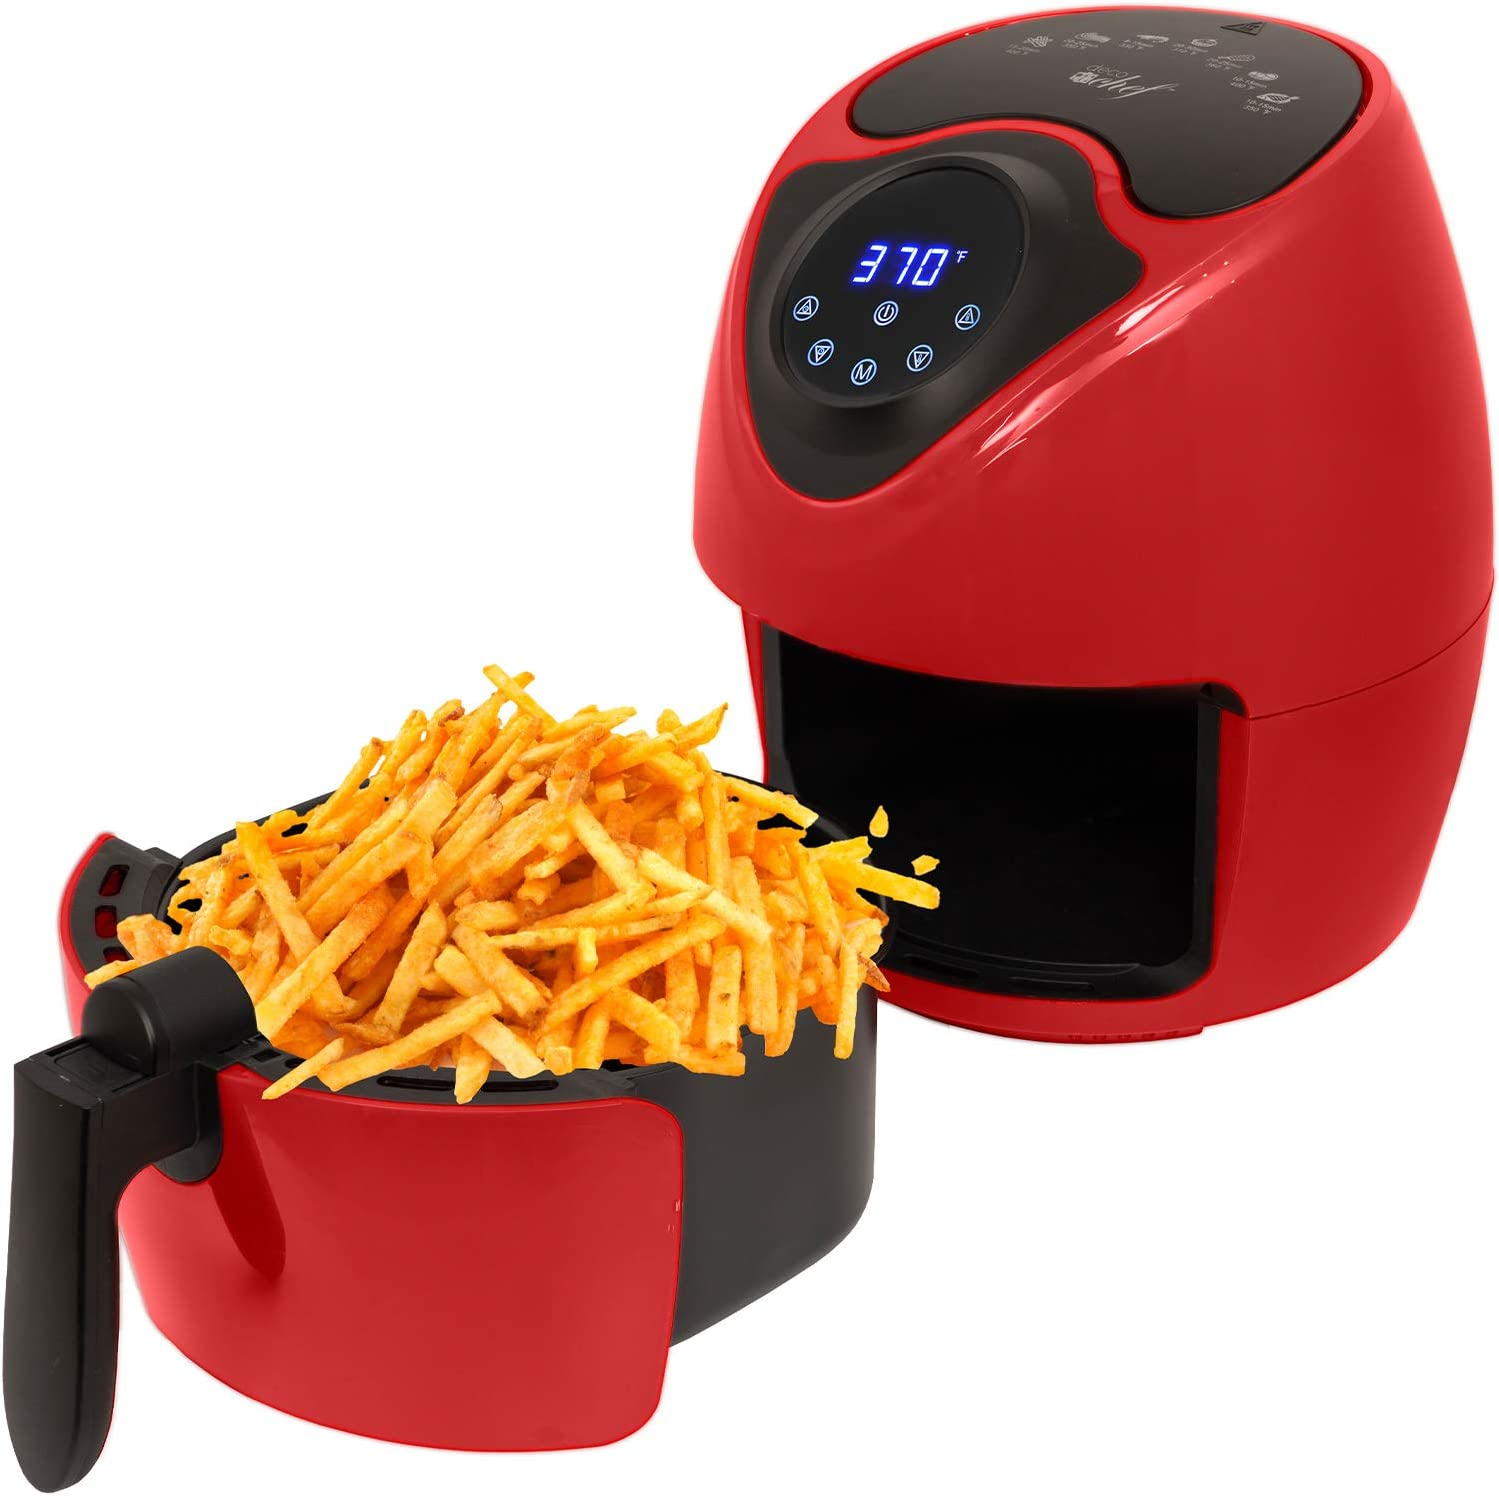 Deco Chef XL 3.7 QT Digital Air Fryer Cooker With 7 Smart Programs, Preheat & Shake Remind, LED Touch Screen Oil-Less Non-Stick Coated Basket, Timer Counter Top, Healthy Kitchen Safe Frying Station with Cookbook (Red)